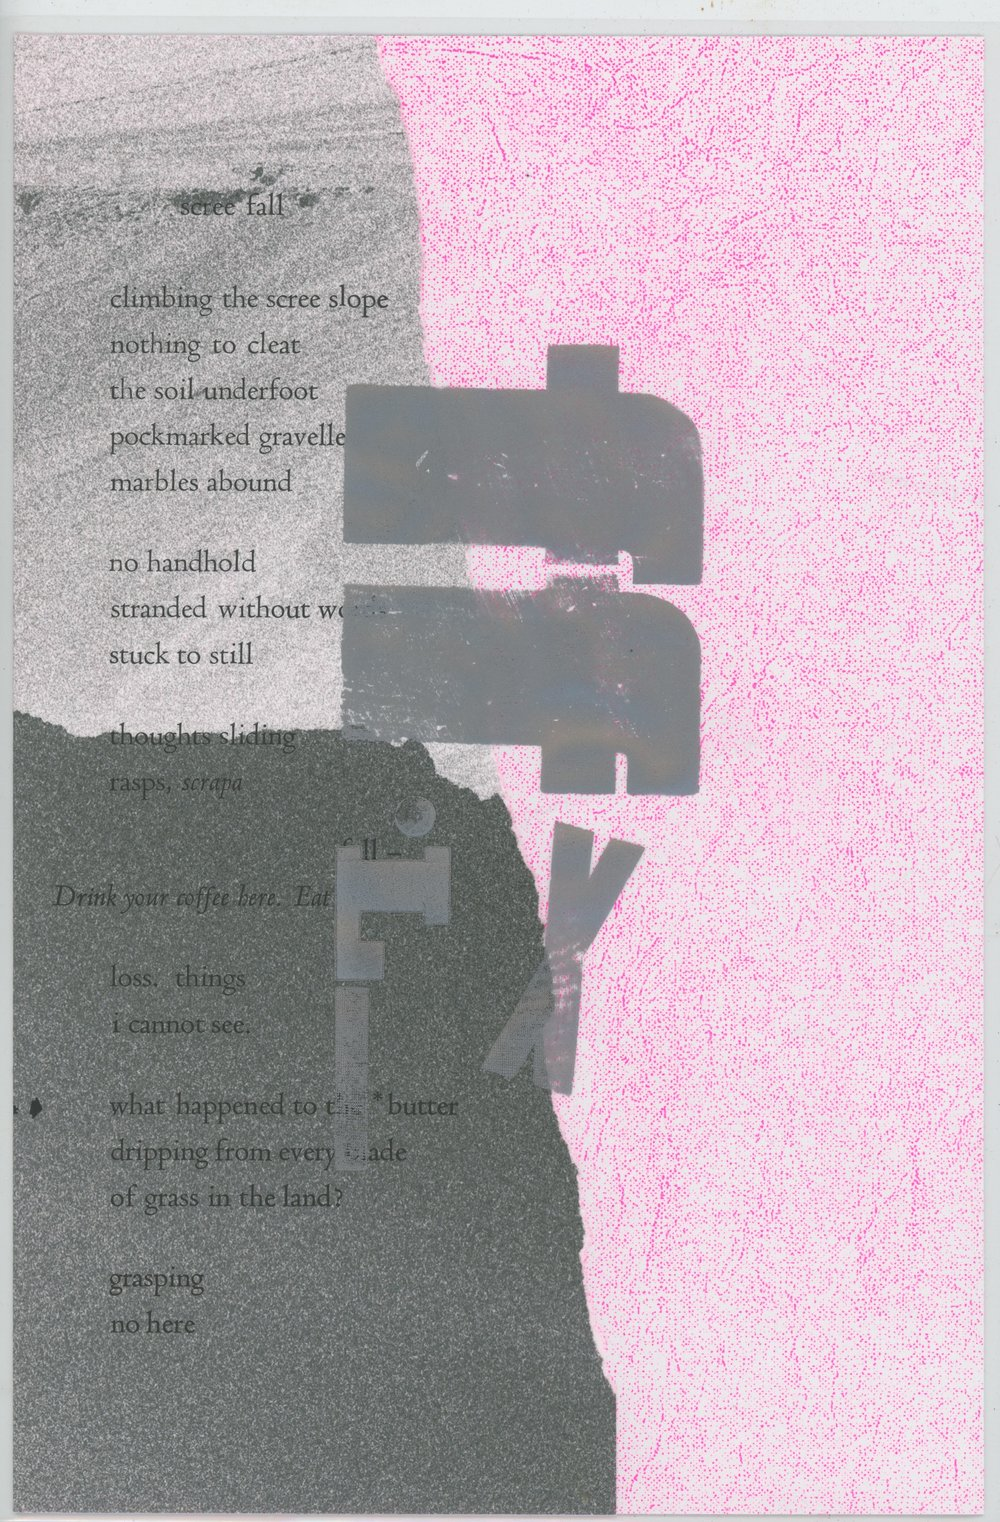 Fl_x: SCREE FALL_12018 - Leaflet with Cellophane Wrap: risograph, digital & letterpress printed on paper7 x 11 inches (folded)11 x 17 inches (open)